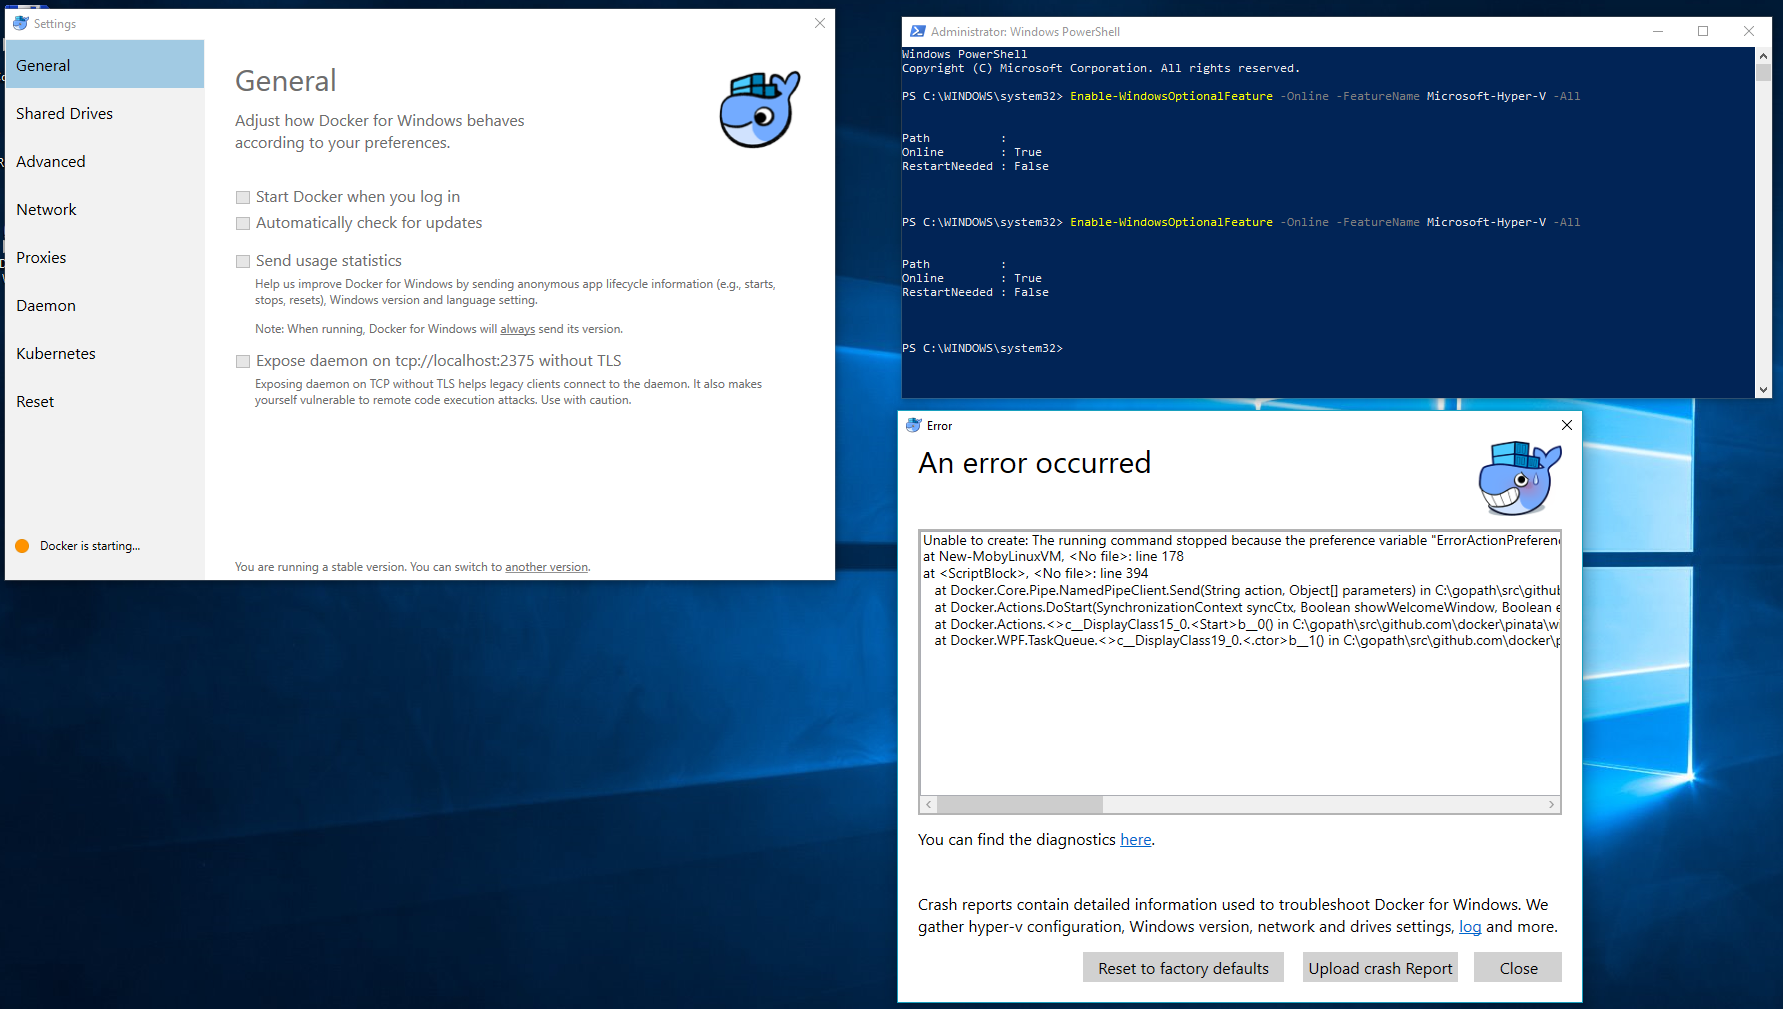 Hyper-V encountered an error trying to access an object on